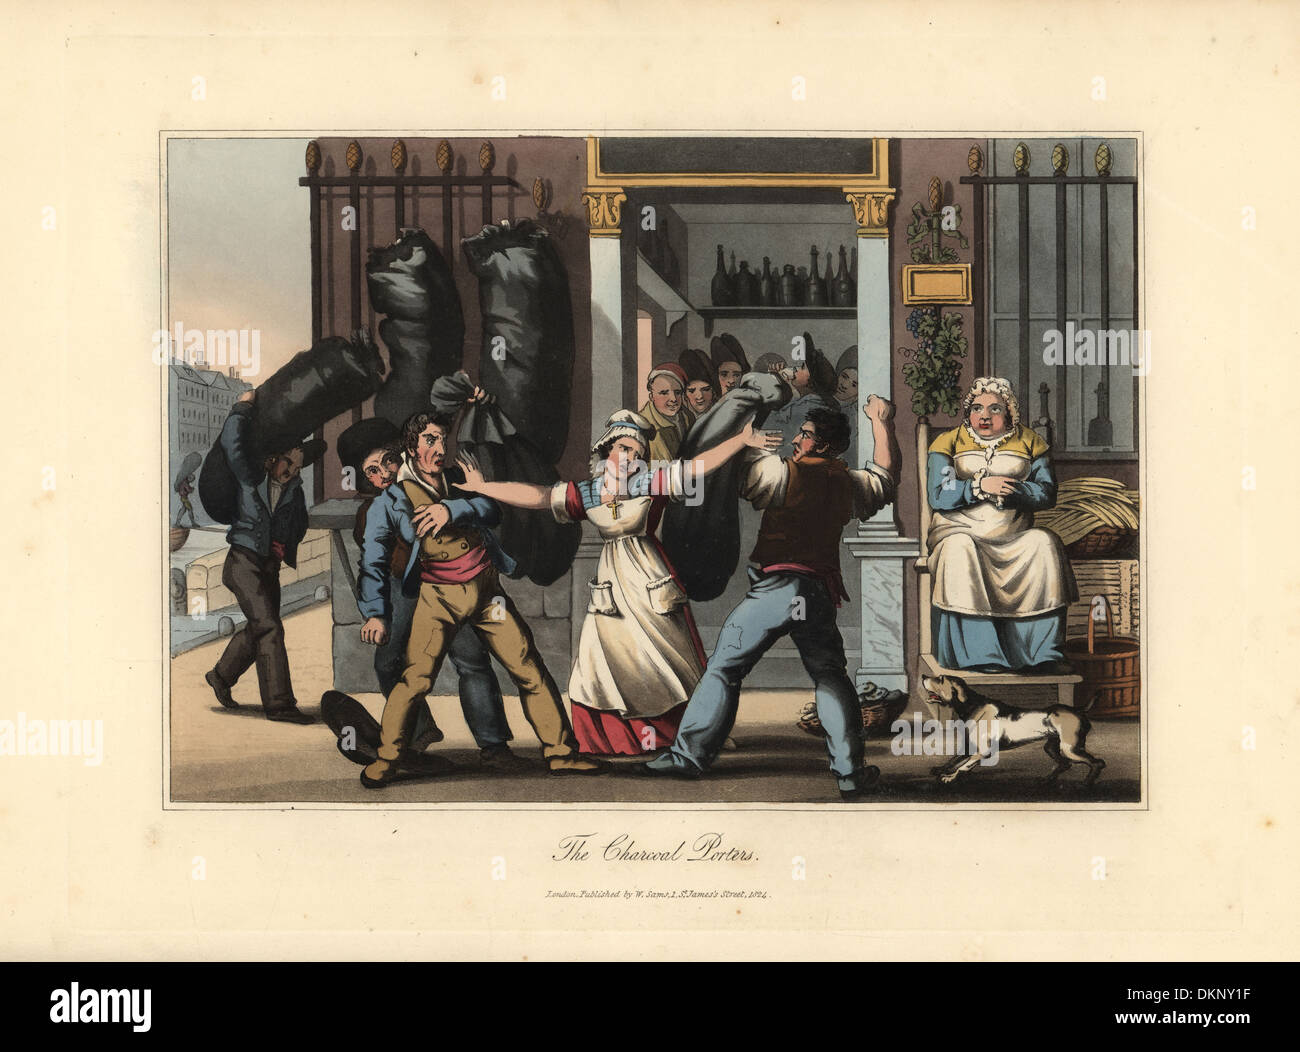 Charcoal porters brawling at a cabaret bar, 19thC. - Stock Image